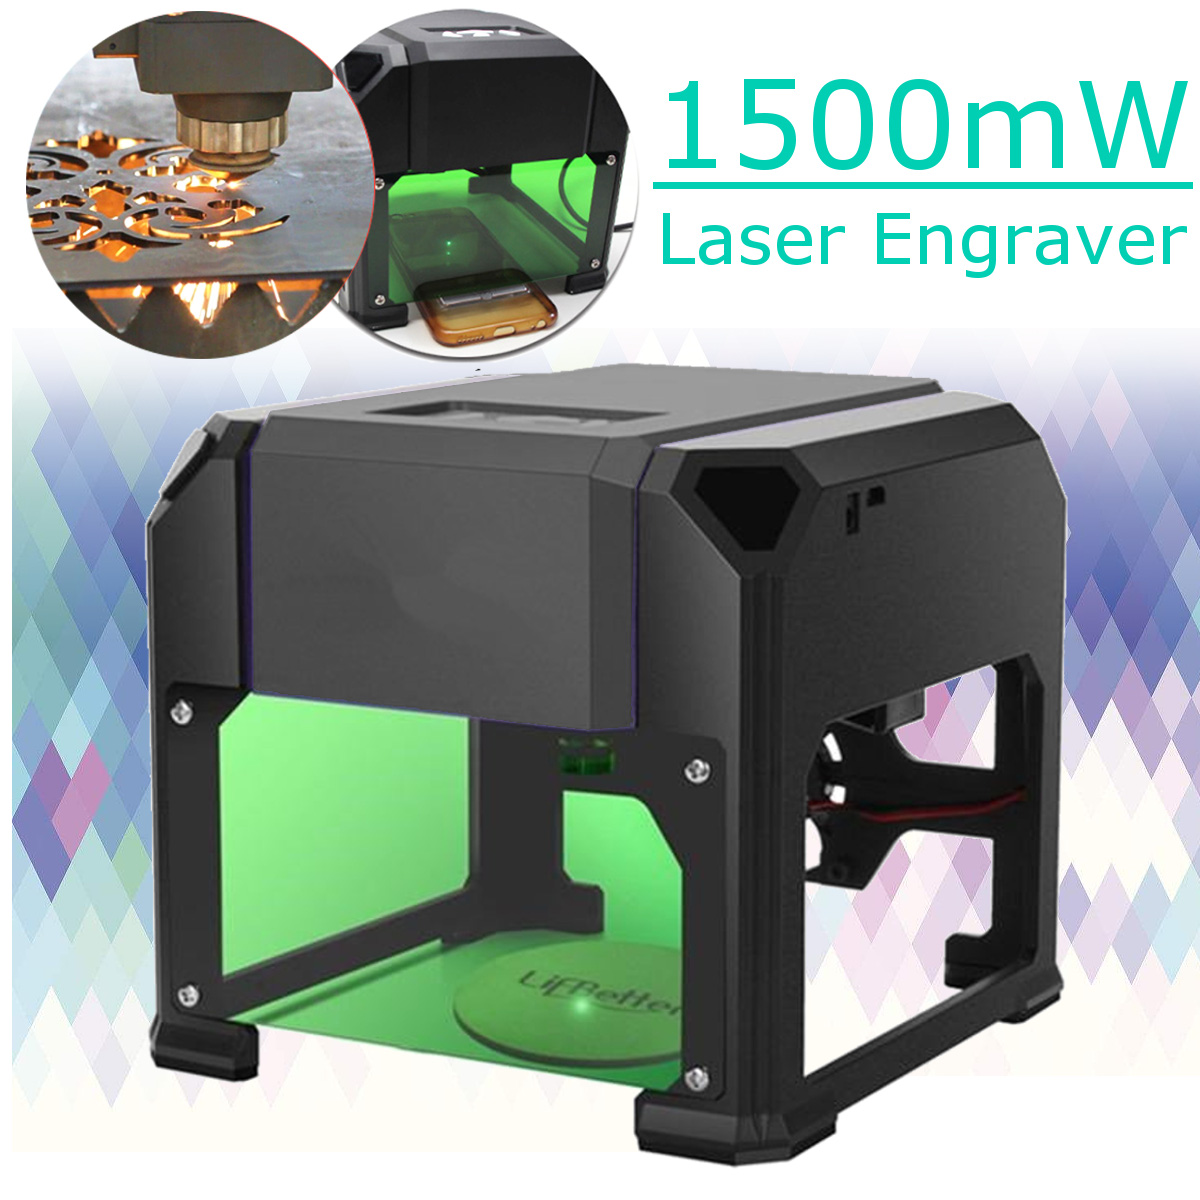 1500mw USB Desktop Laser Engraving Machine DIY Logo Marking Engraver CNC Laser Carving Machine 80x80mm Engraving Range кпб b 10